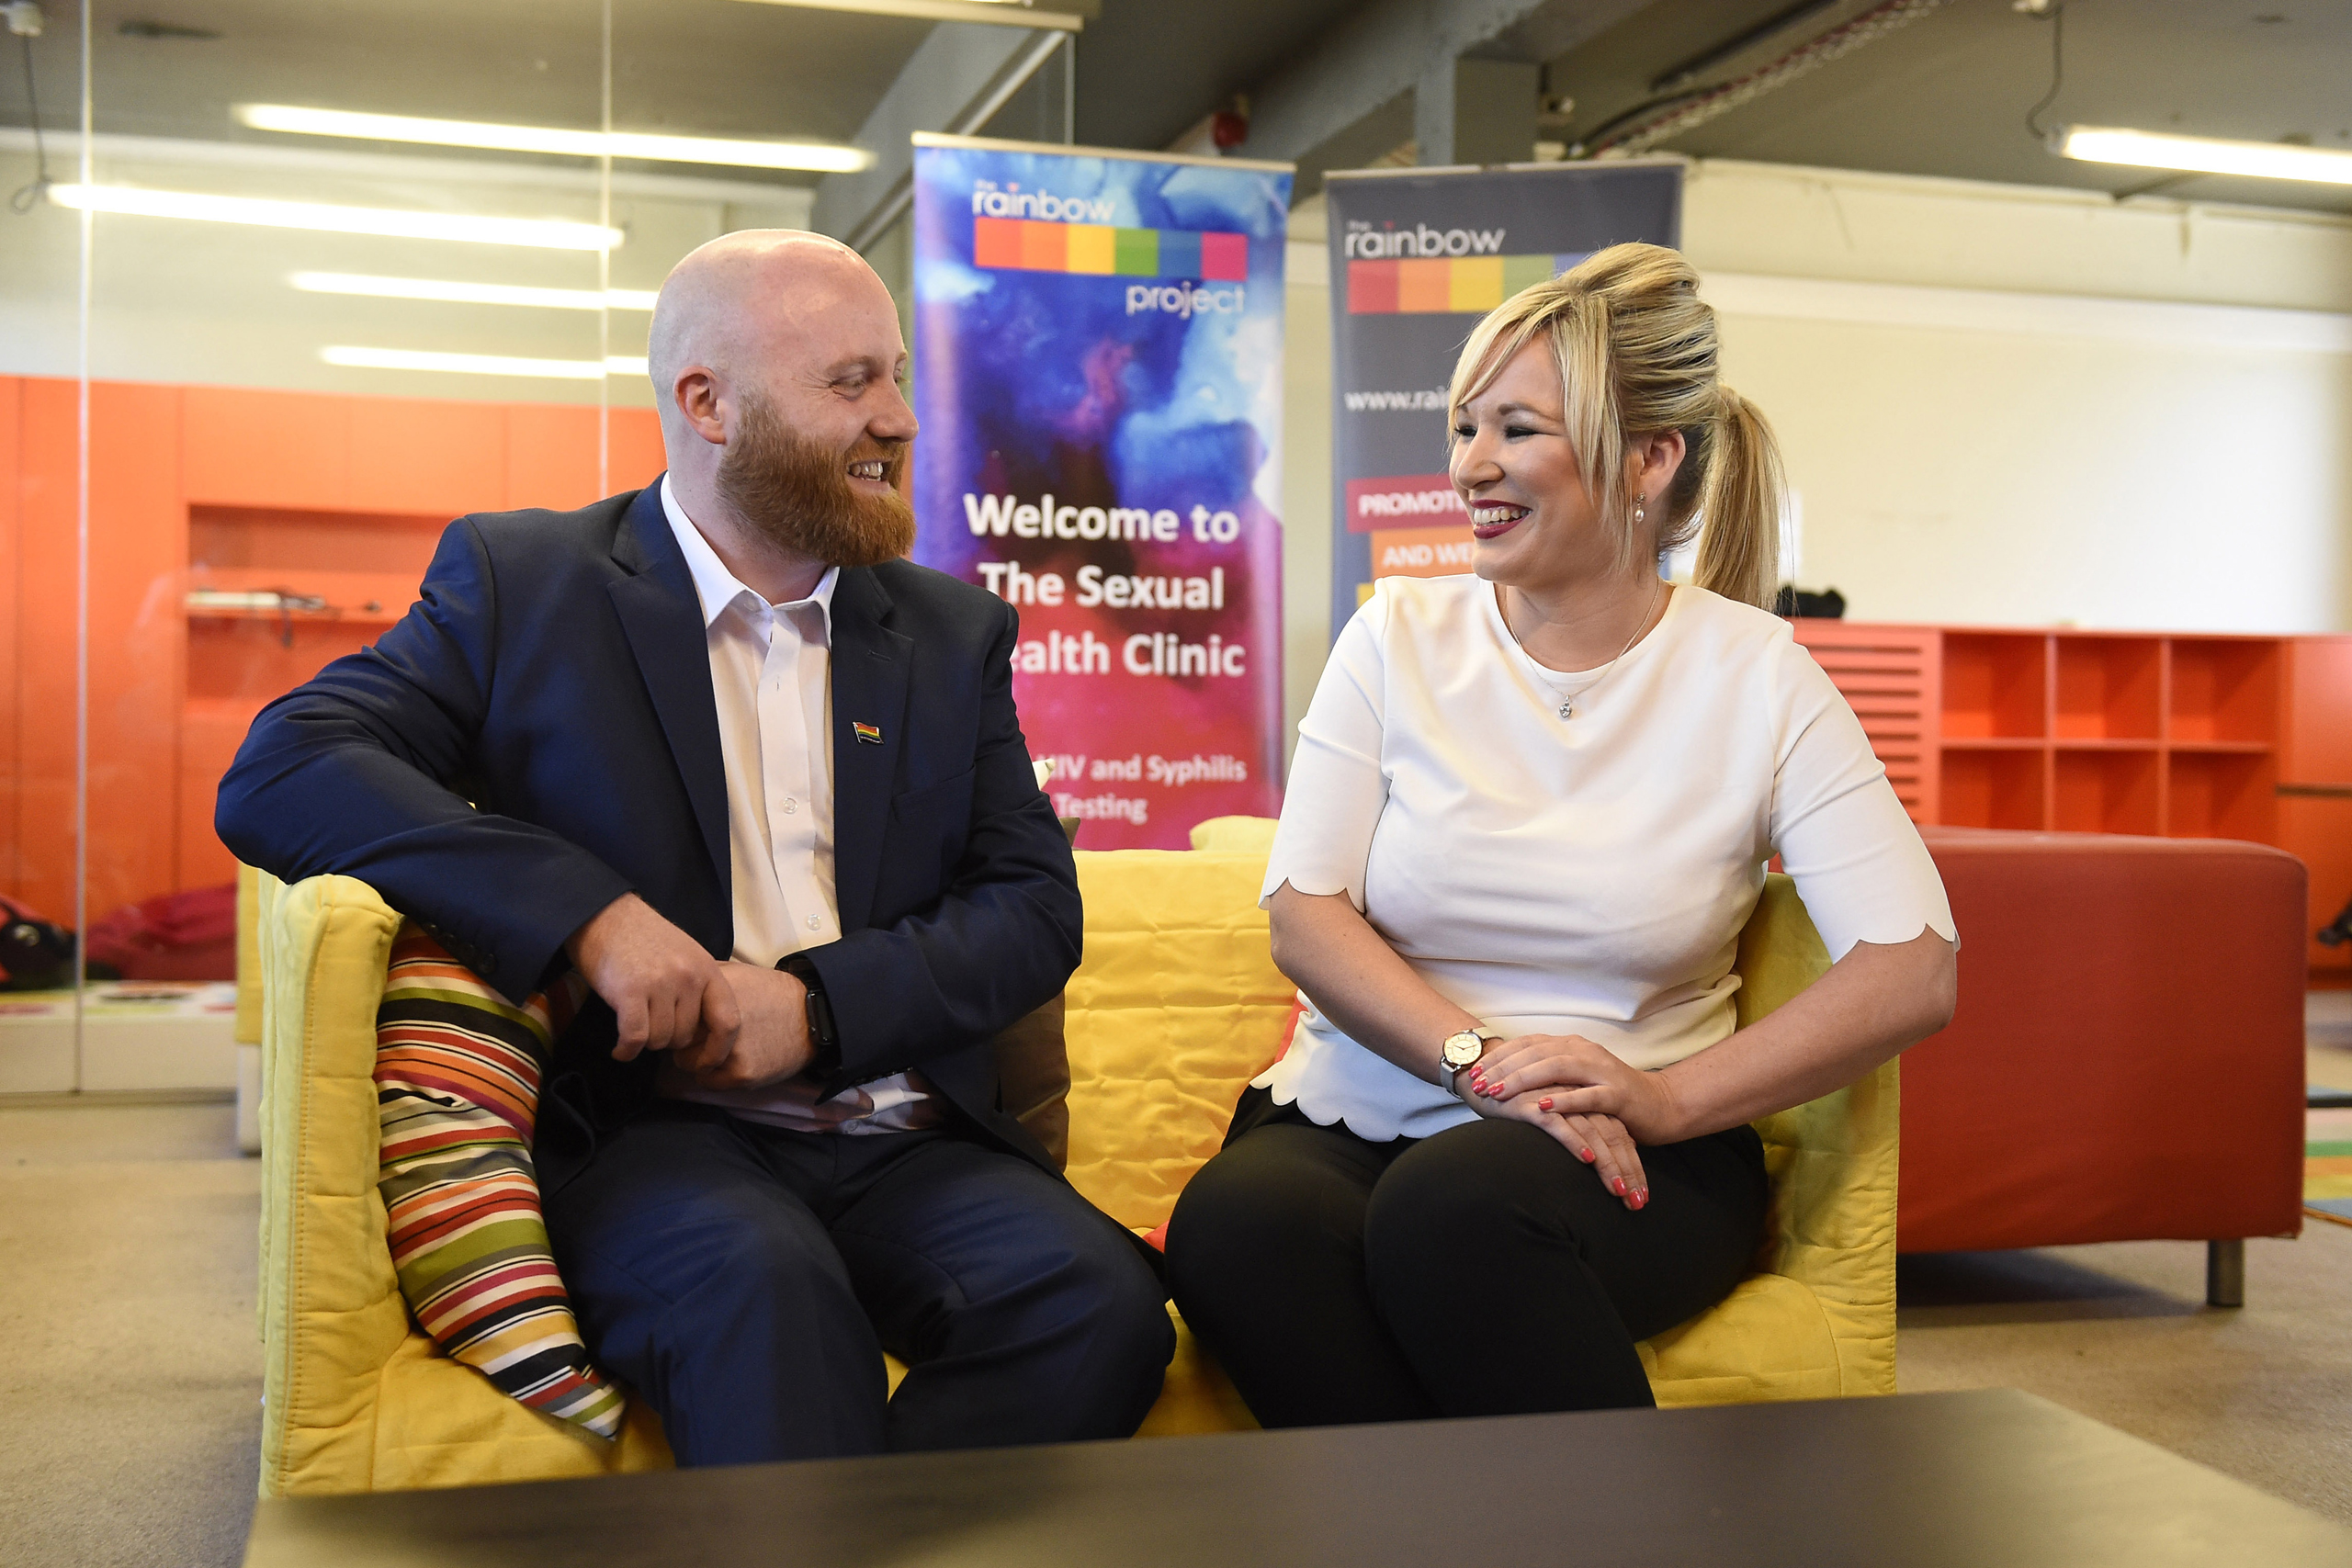 Health Minister Michelle O'Neill with John O'Doherty from The Rainbow Project which supports the LGBT community, at the organization's offices in Belfast, June 2, 2016.